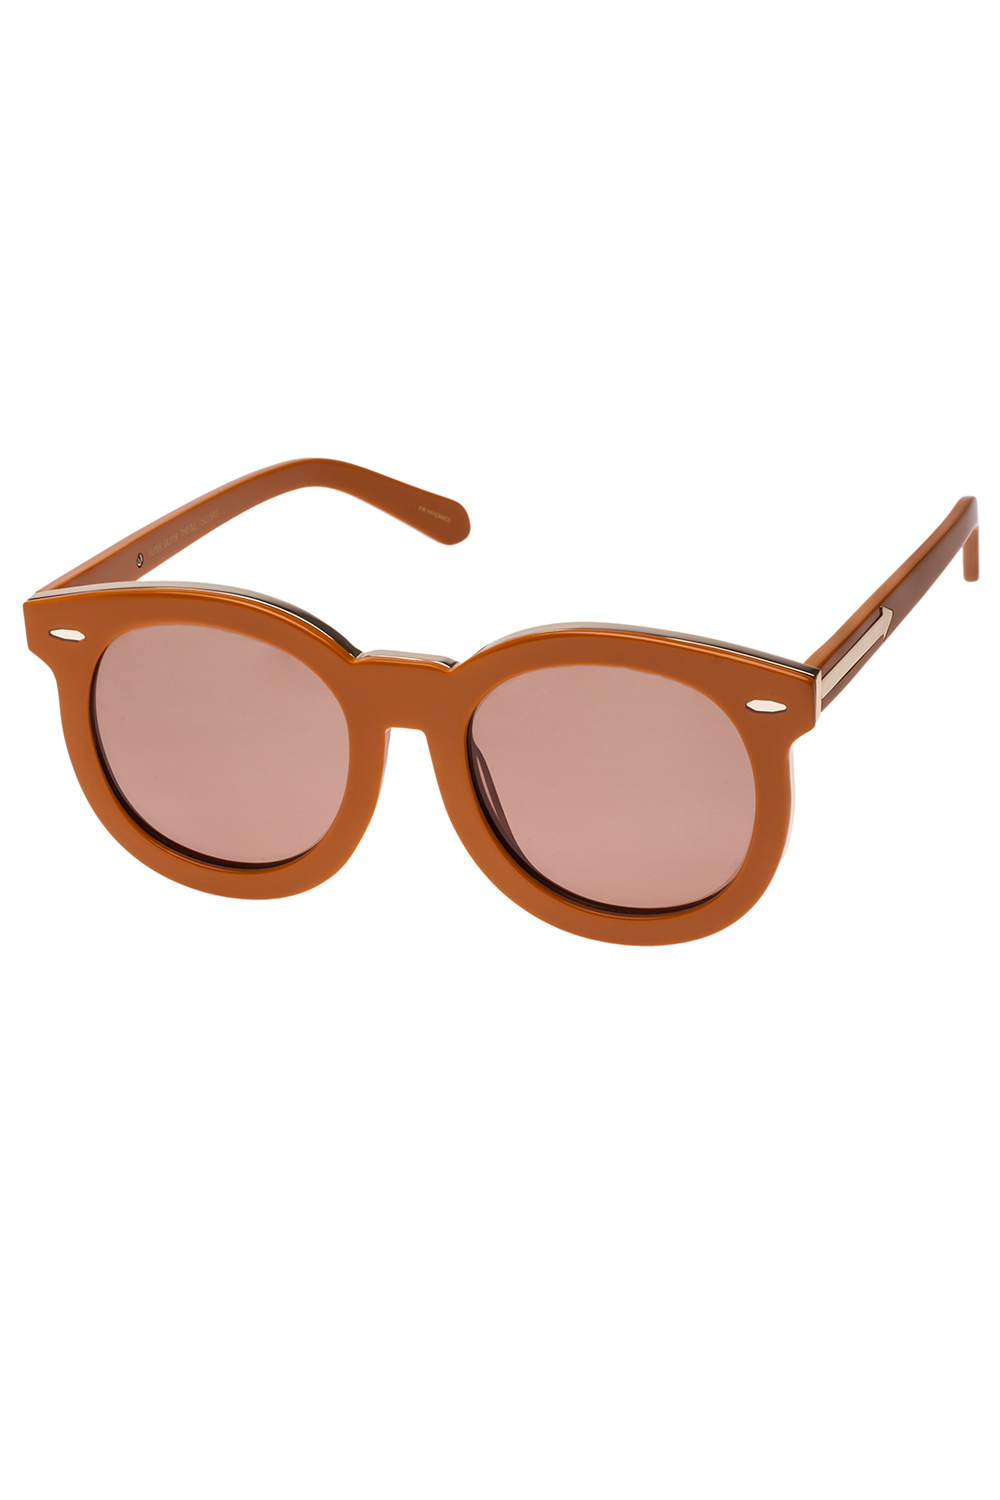 sunnies super-duper-thistle-tan-gold-sgkas1501593-tan-gold-front.jpg